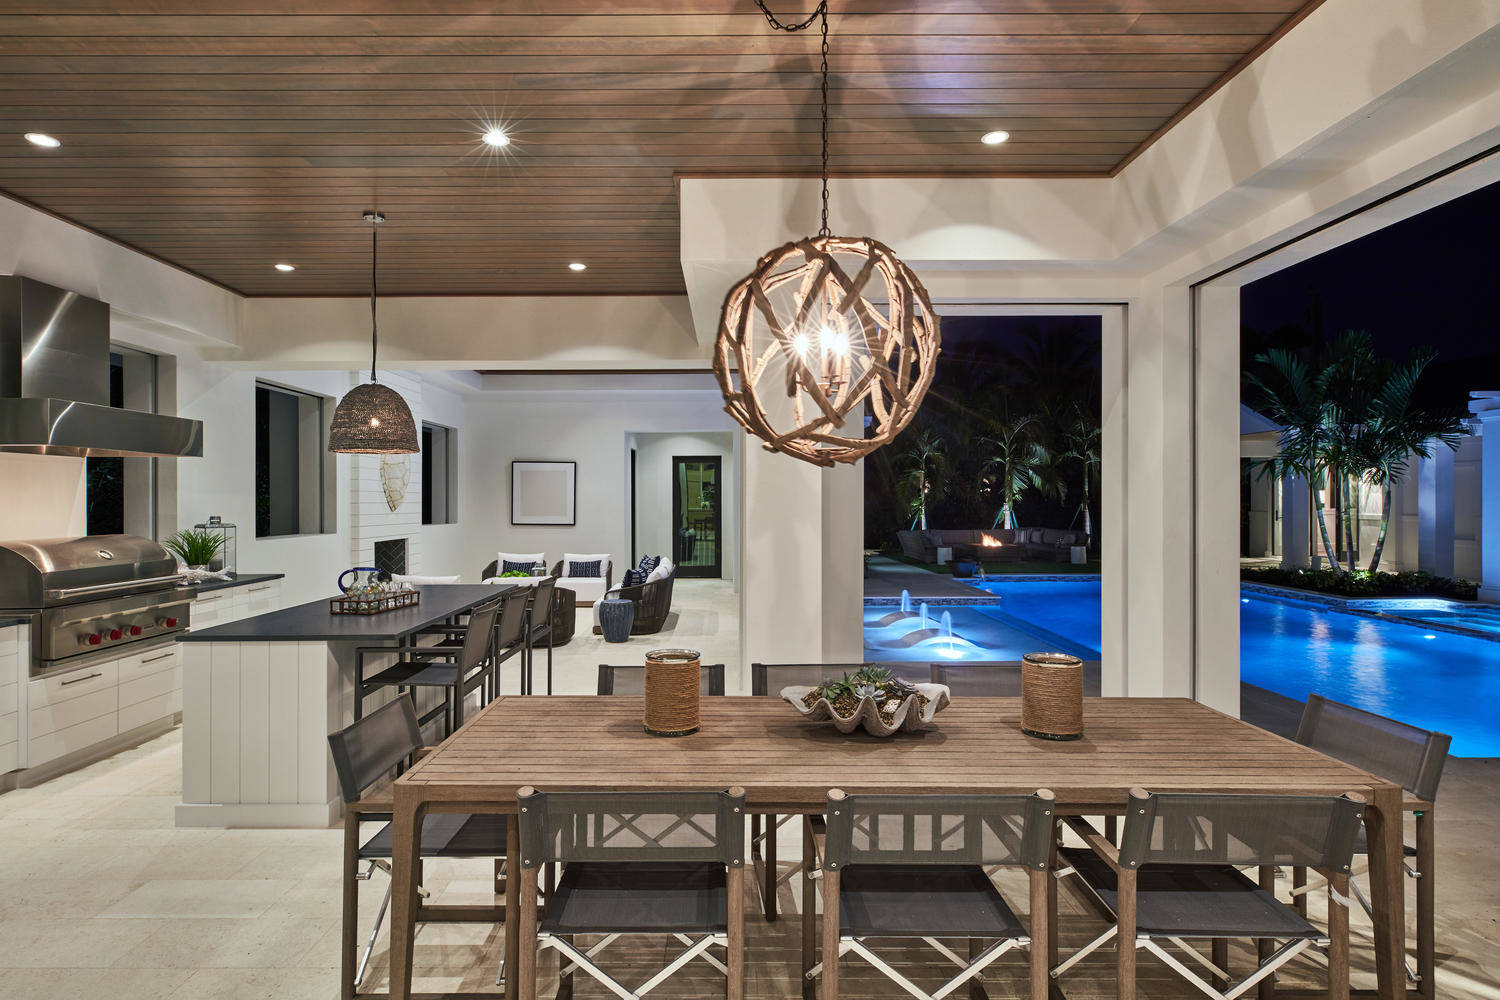 Gordon Drive clean transitional home with Gulf views